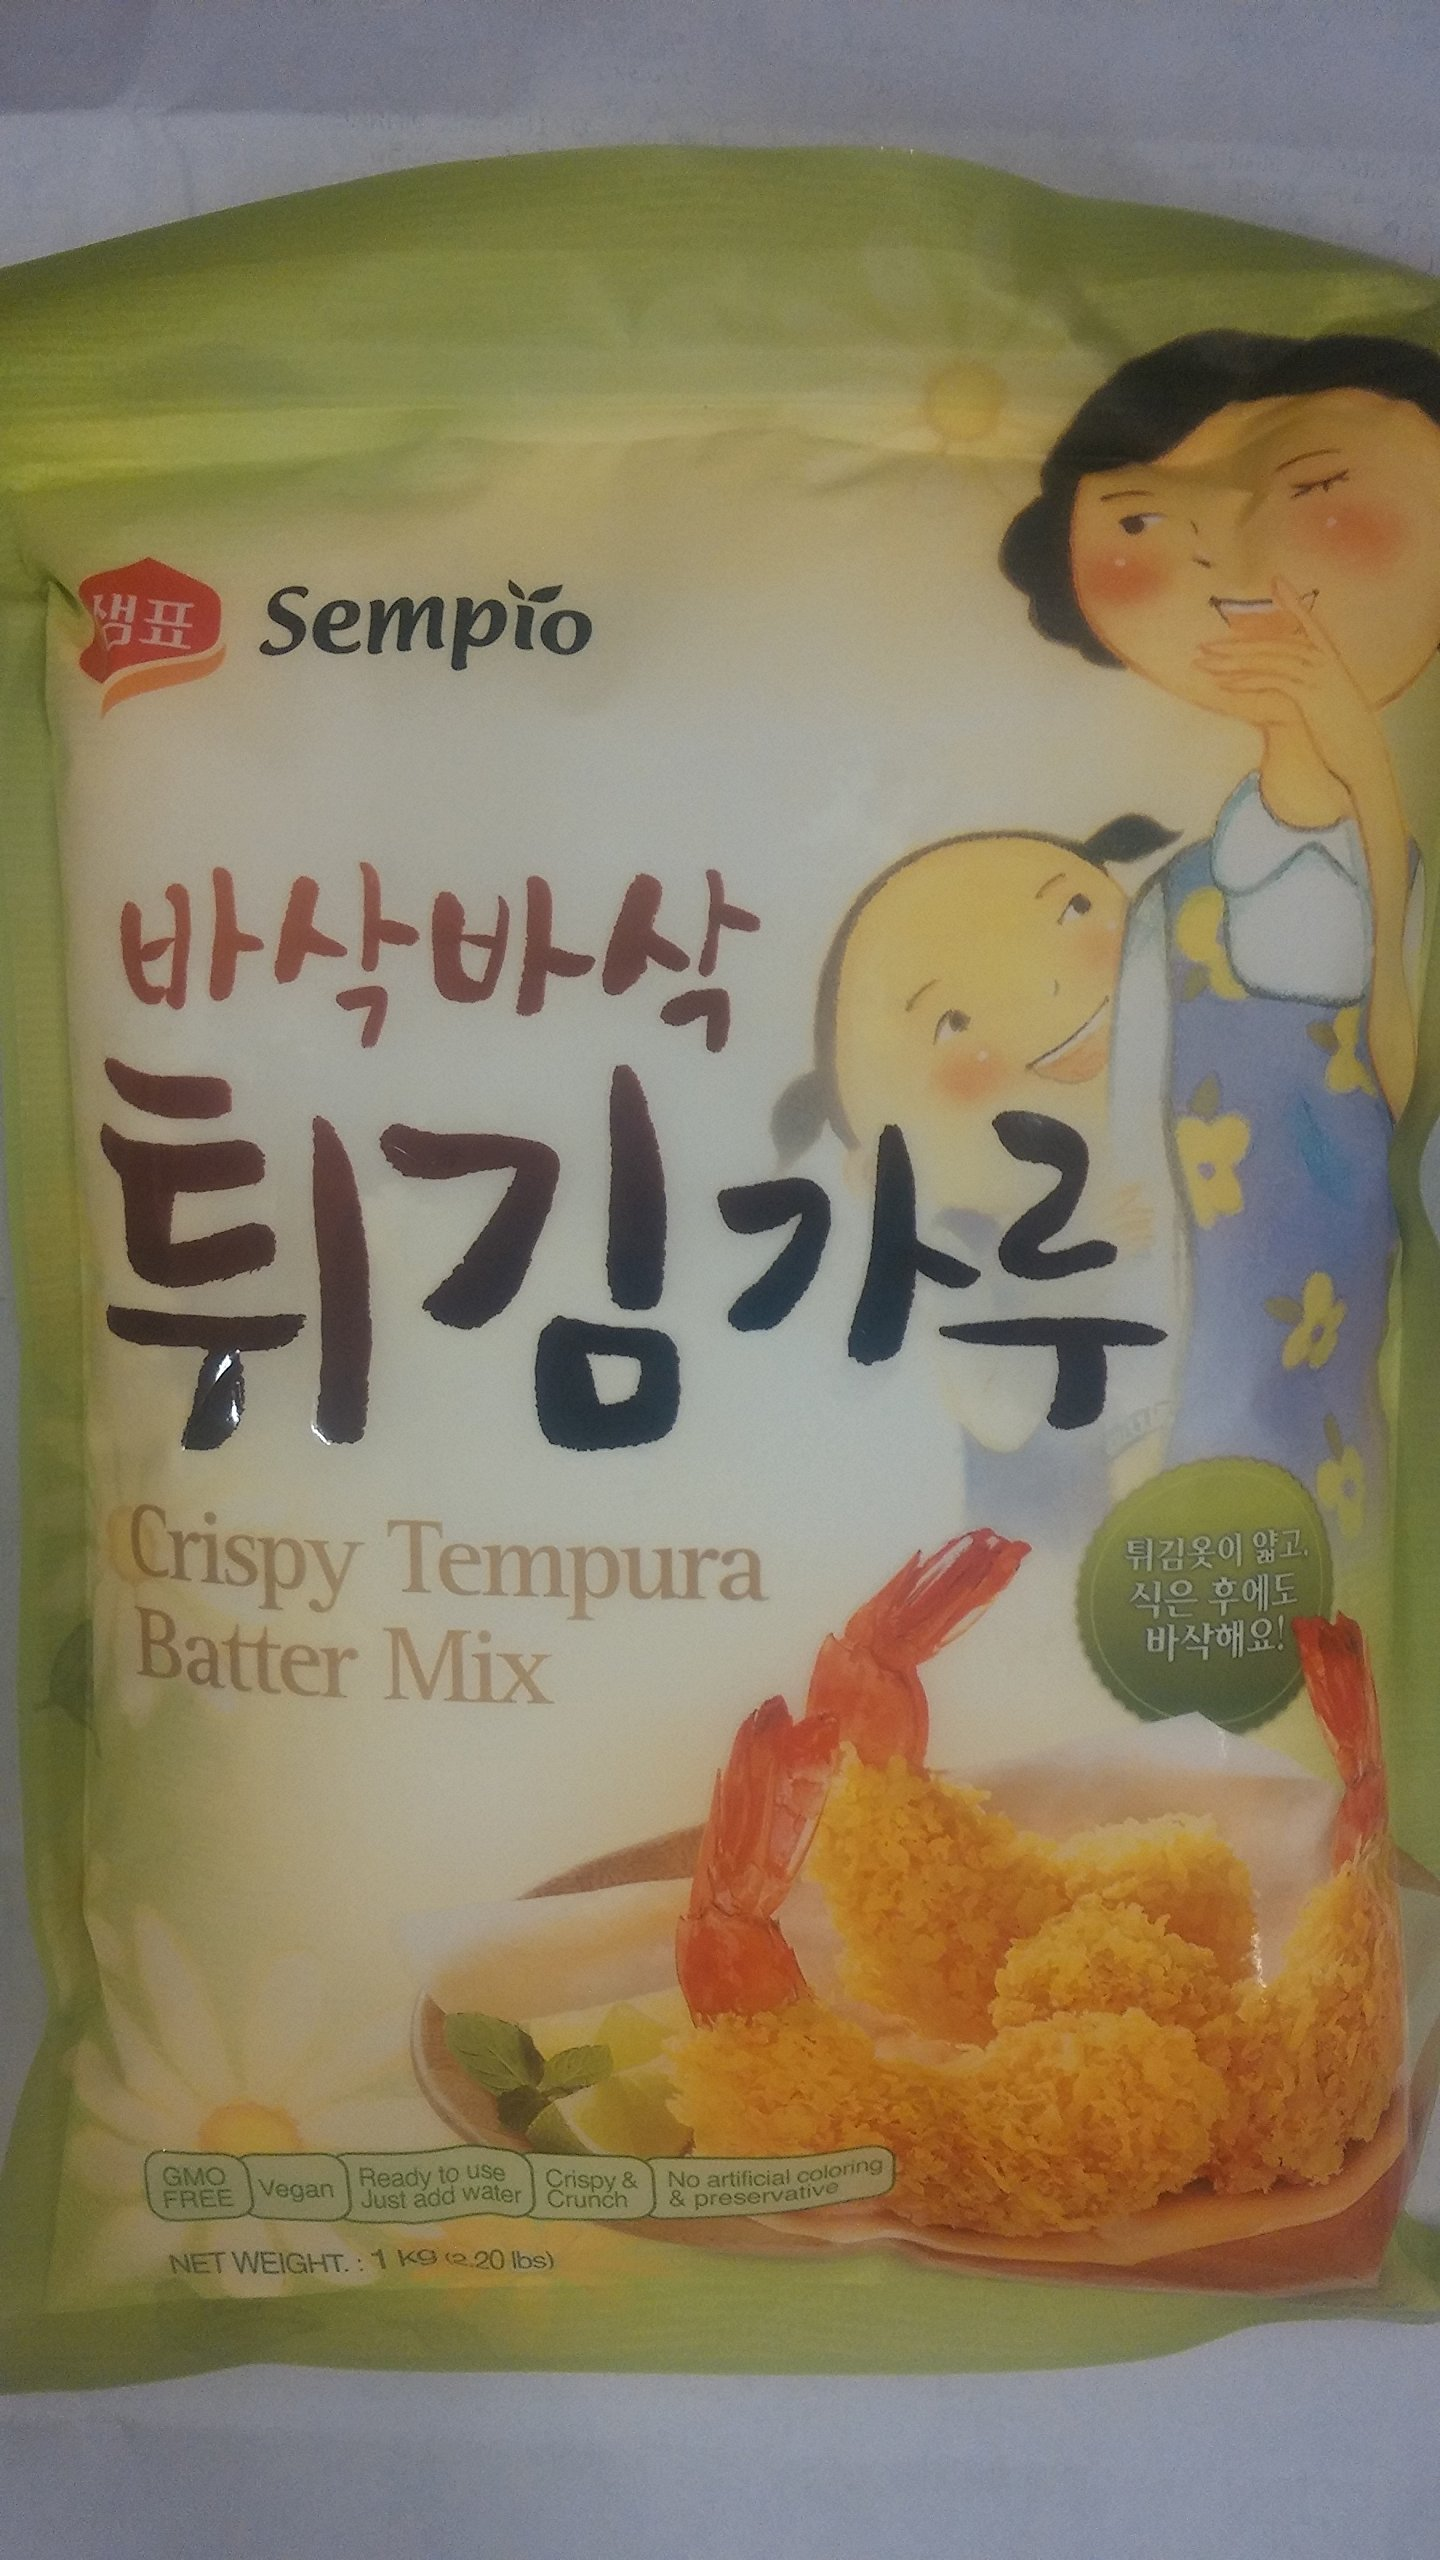 Sempio Crispy Tempura Batter Mix (2.2lbs x 2 packs) by Sempio